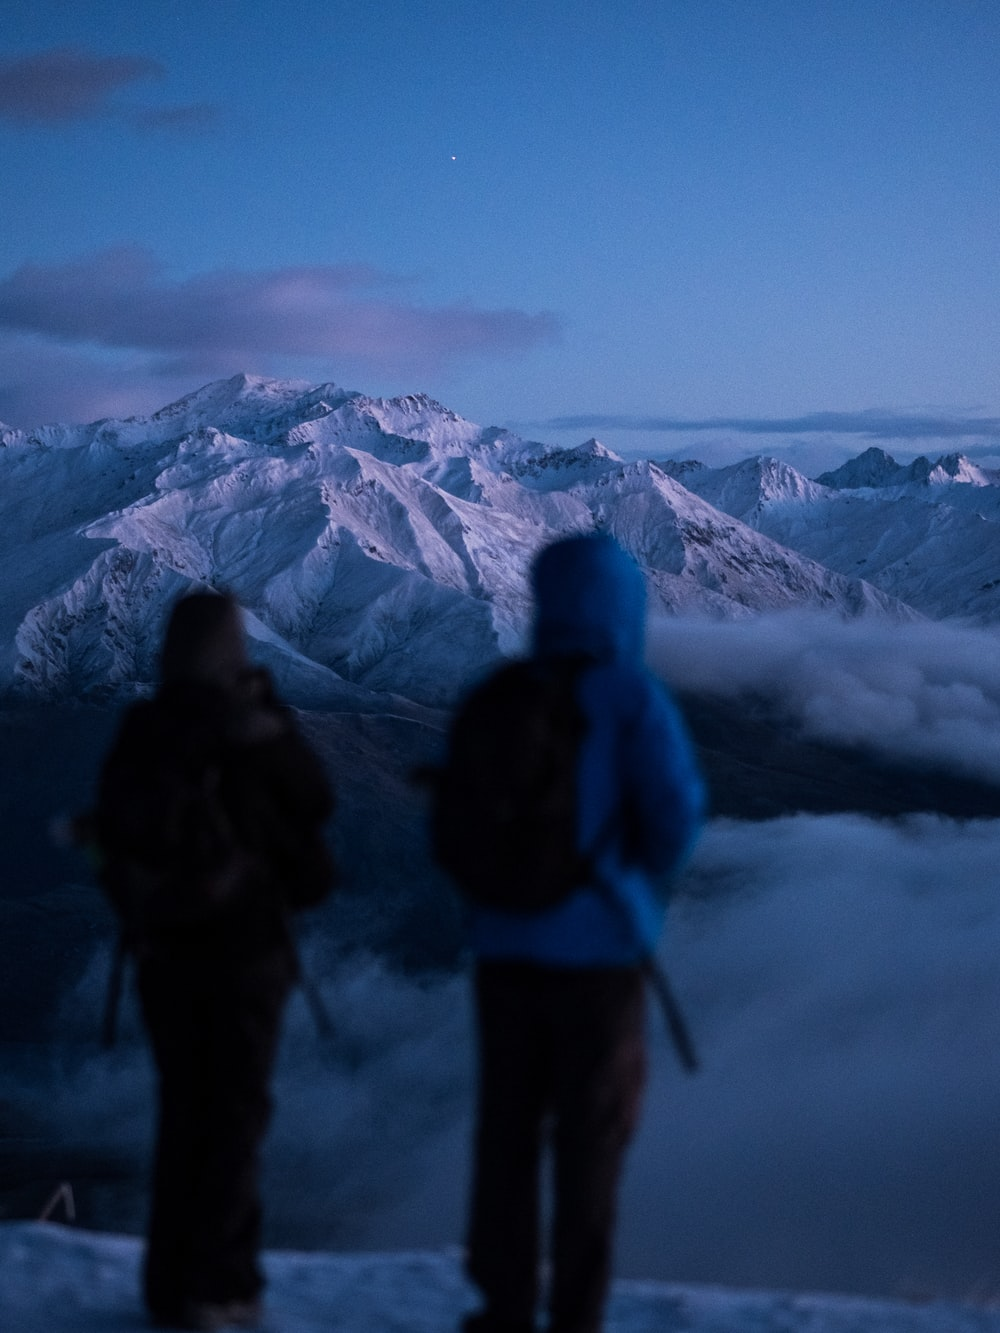 two person standing on mountain edge with fogs under blue sky